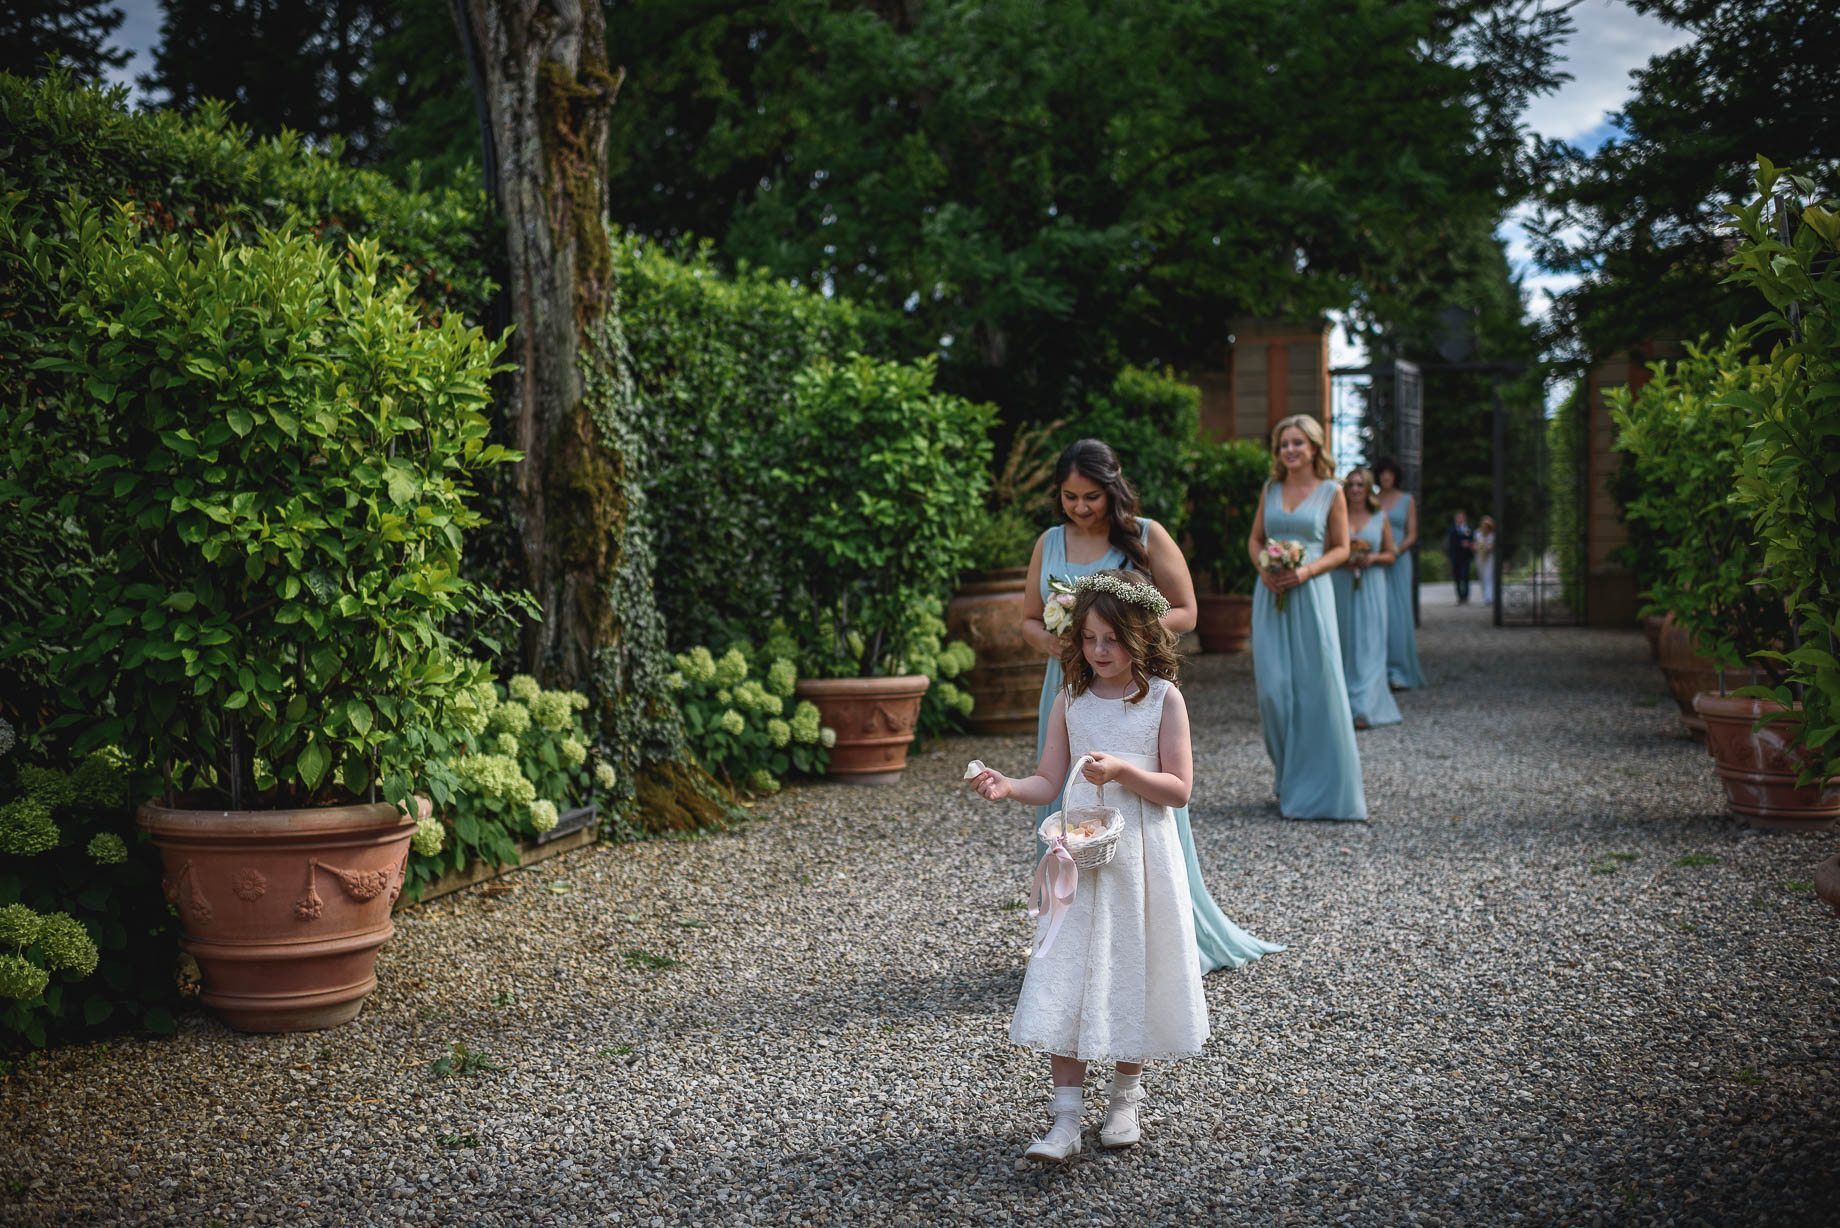 Tuscany wedding photography - Roisin and Moubin - Guy Collier Photography (102 of 251)